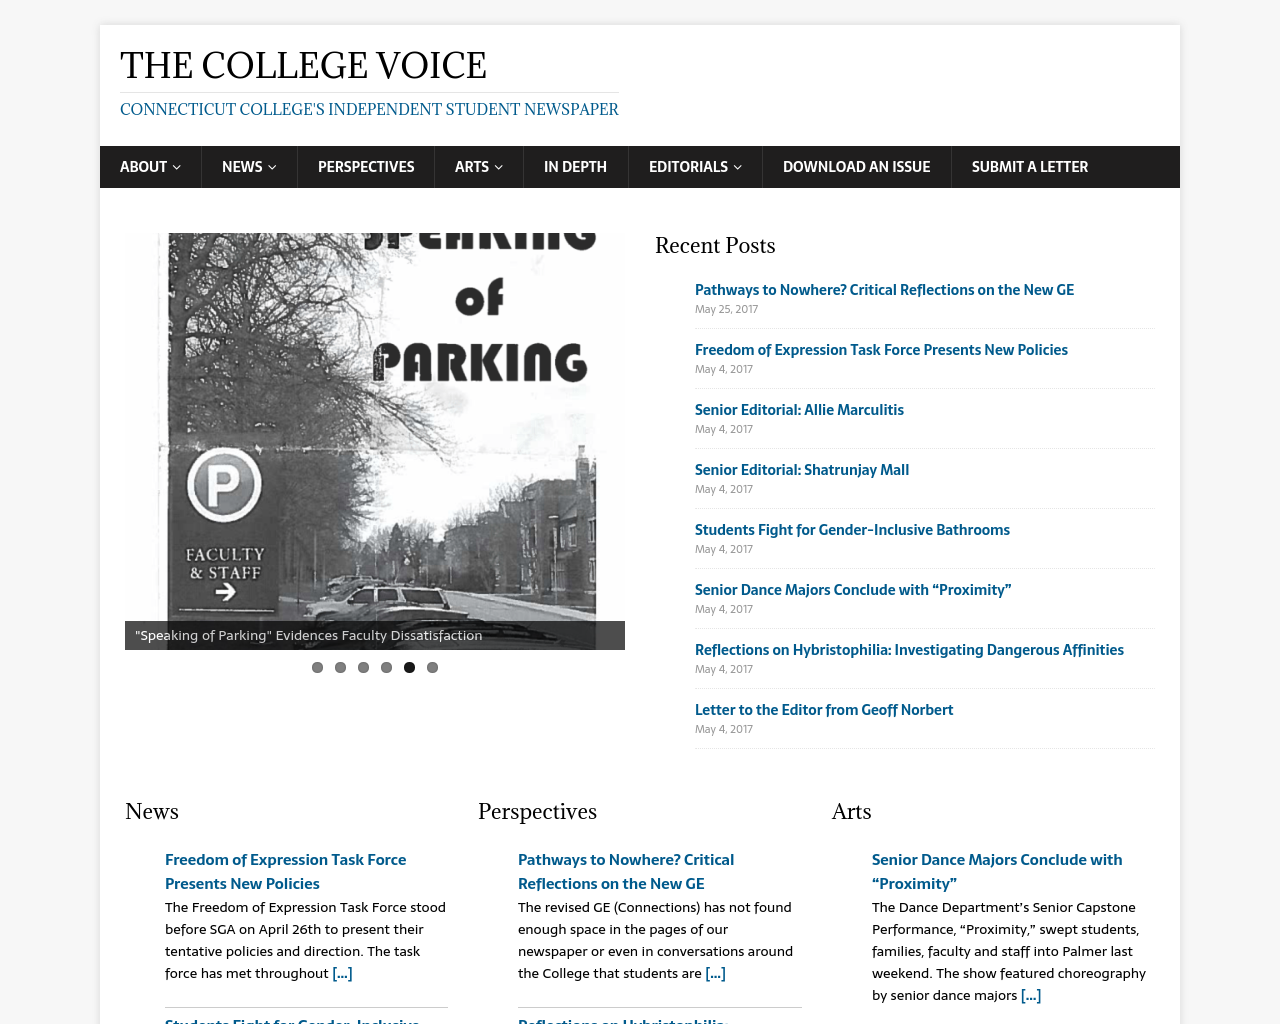 The-College-Voice-Advertising-Reviews-Pricing